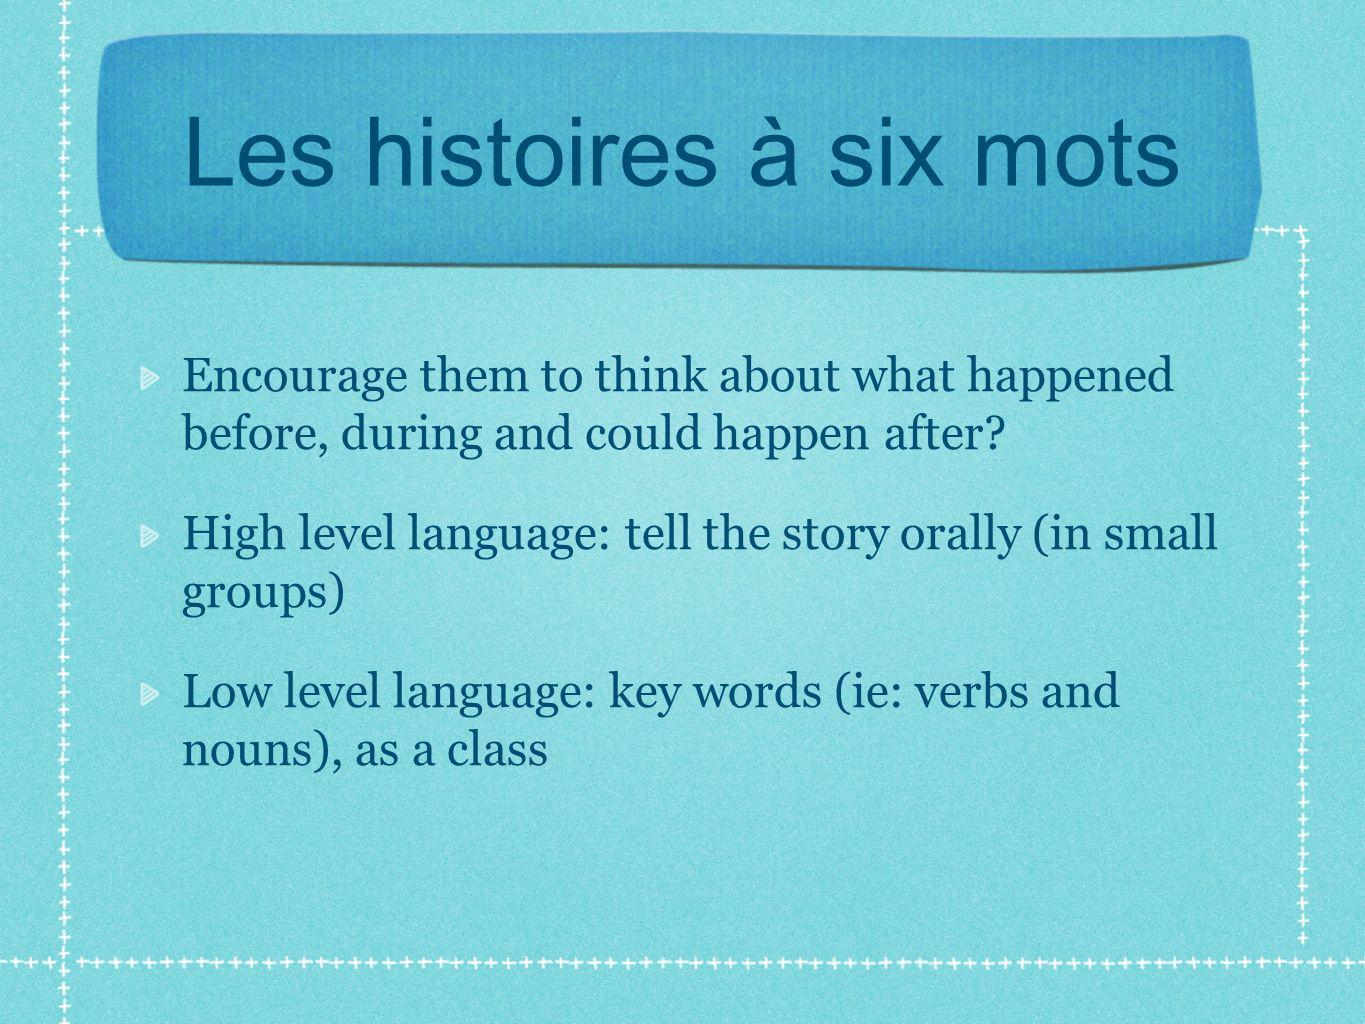 Les histoires à six mots Encourage them to think about what happened before, during and could happen after.